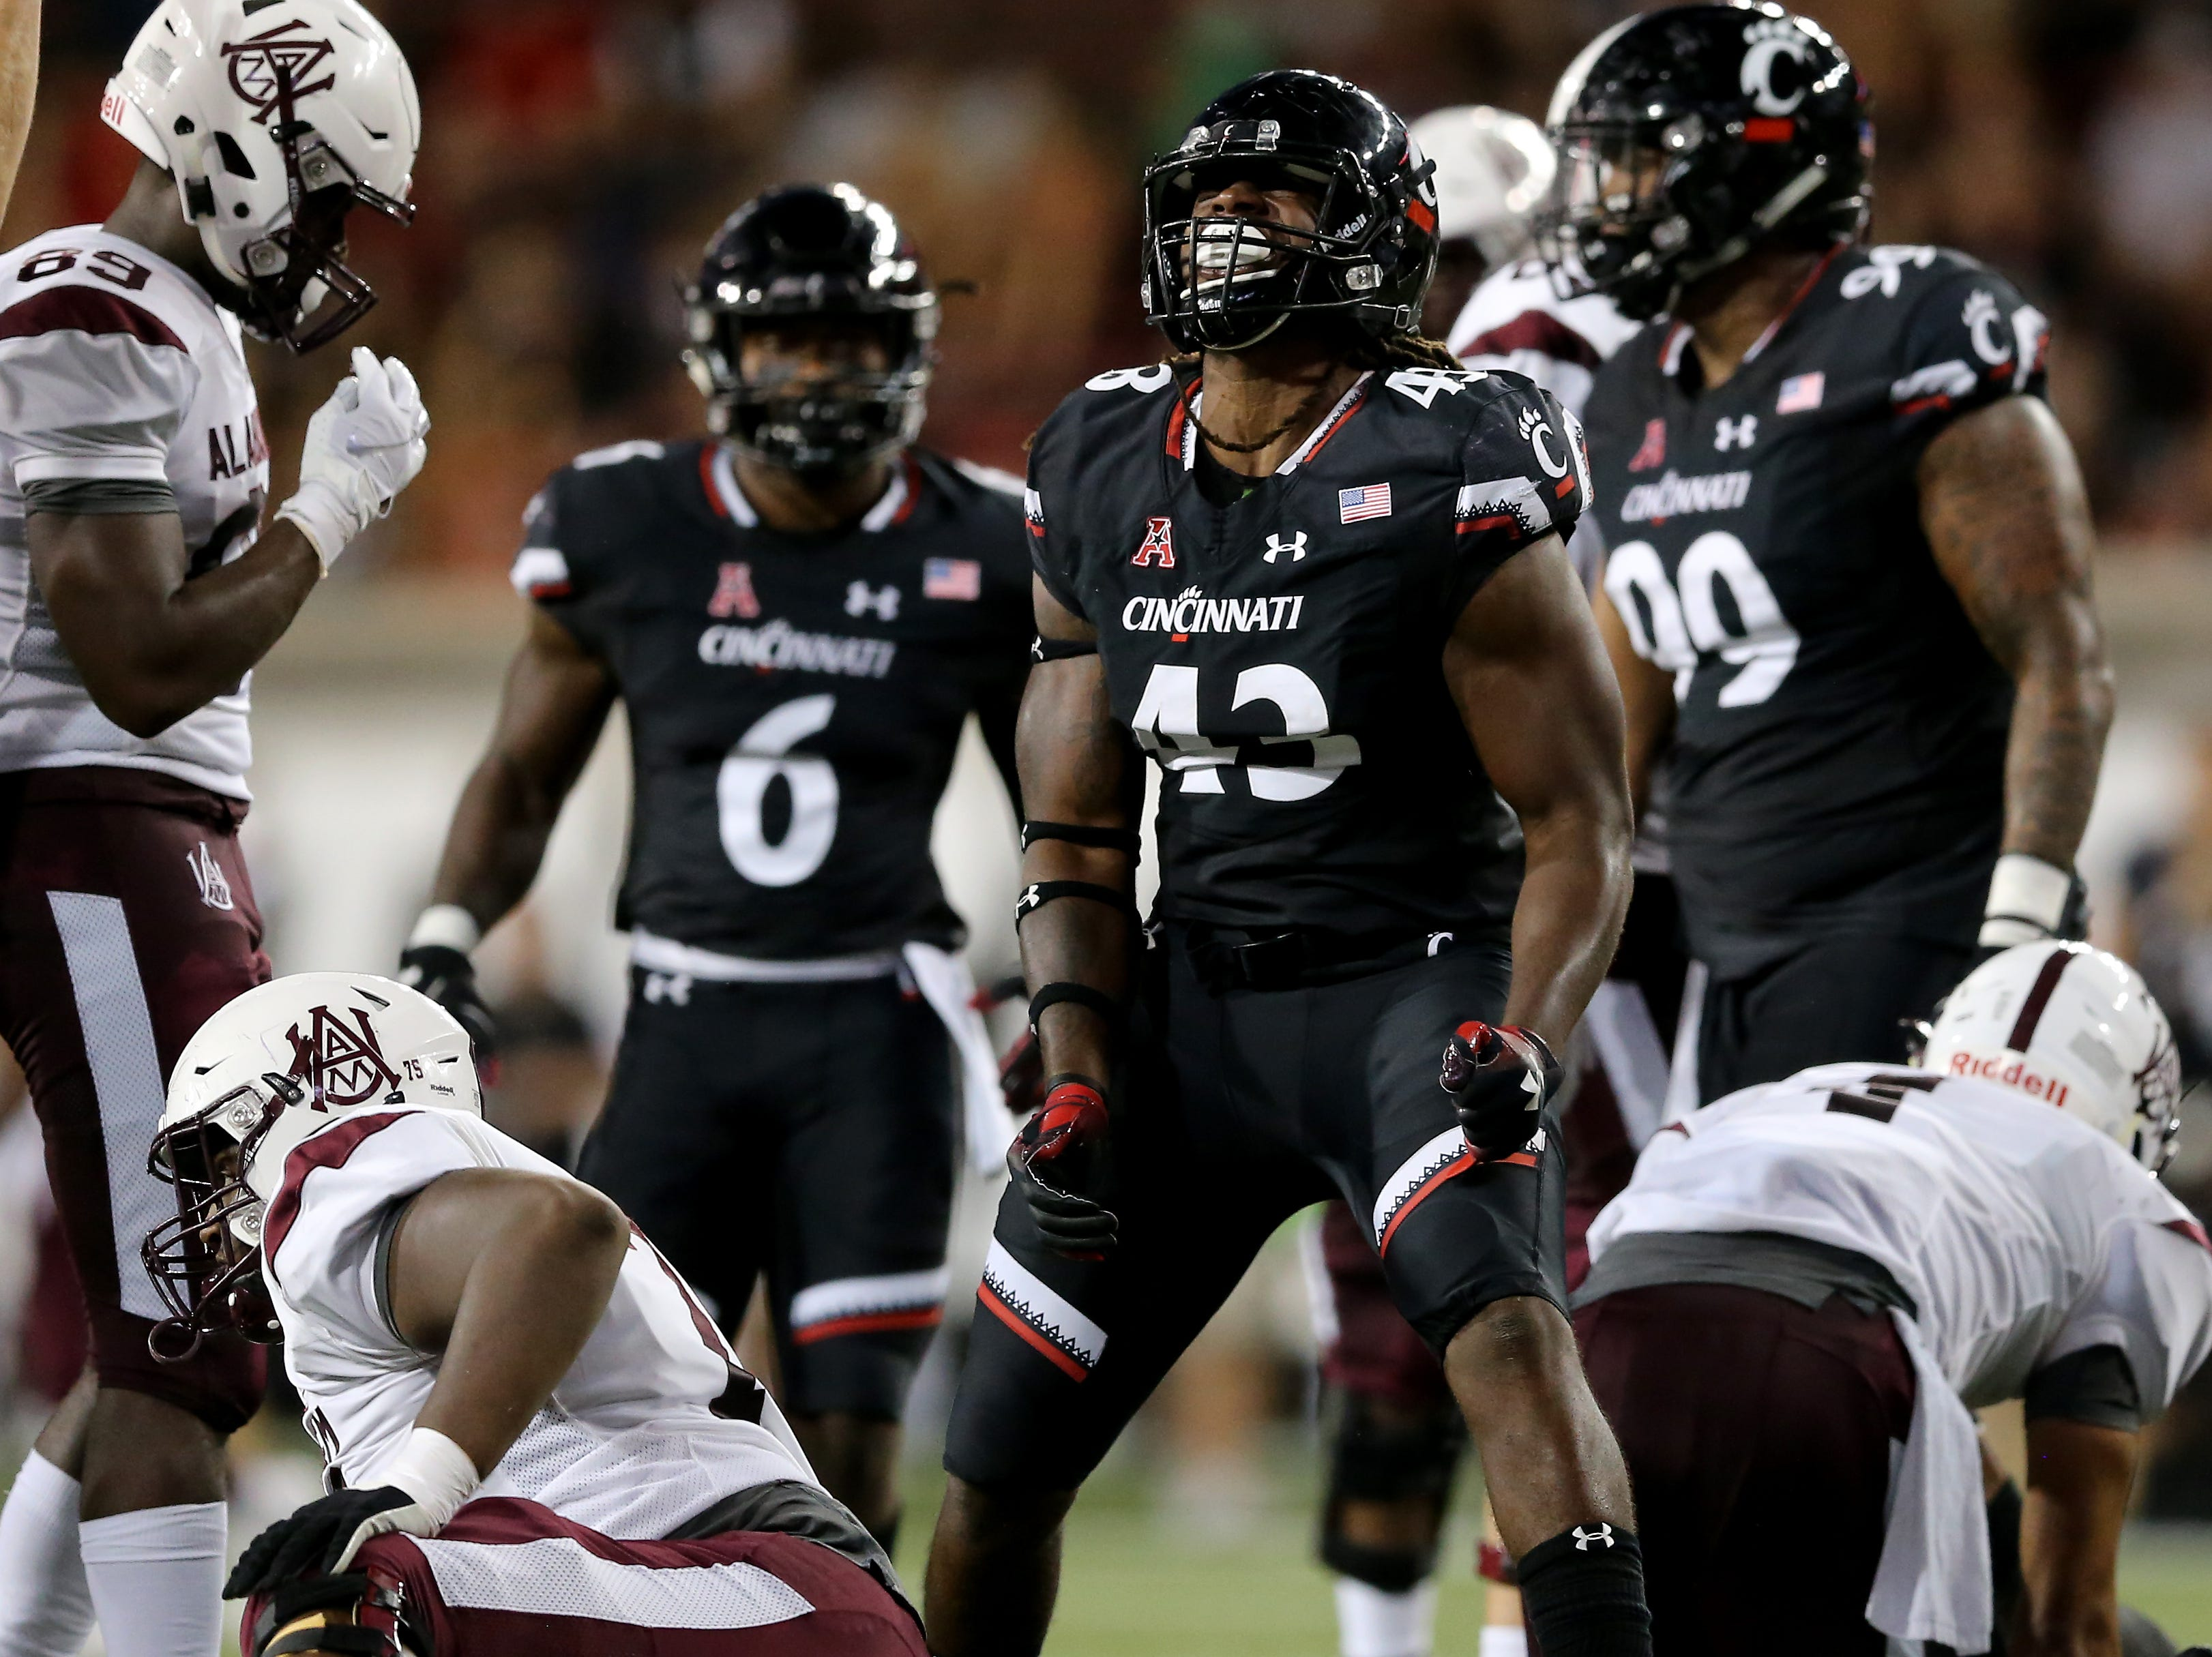 Cincinnati Bearcats defensive end Malik Vann (42) celebrates a sack of Alabama A&M Bulldogs quarterback Aqeel Glass (4), right, in the second quarter during a college football game between the Cincinnati Bearcats and the Alabama A&M Bulldogs, Saturday, Sept. 15, 2018, at Nippert Stadium in Cincinnati.